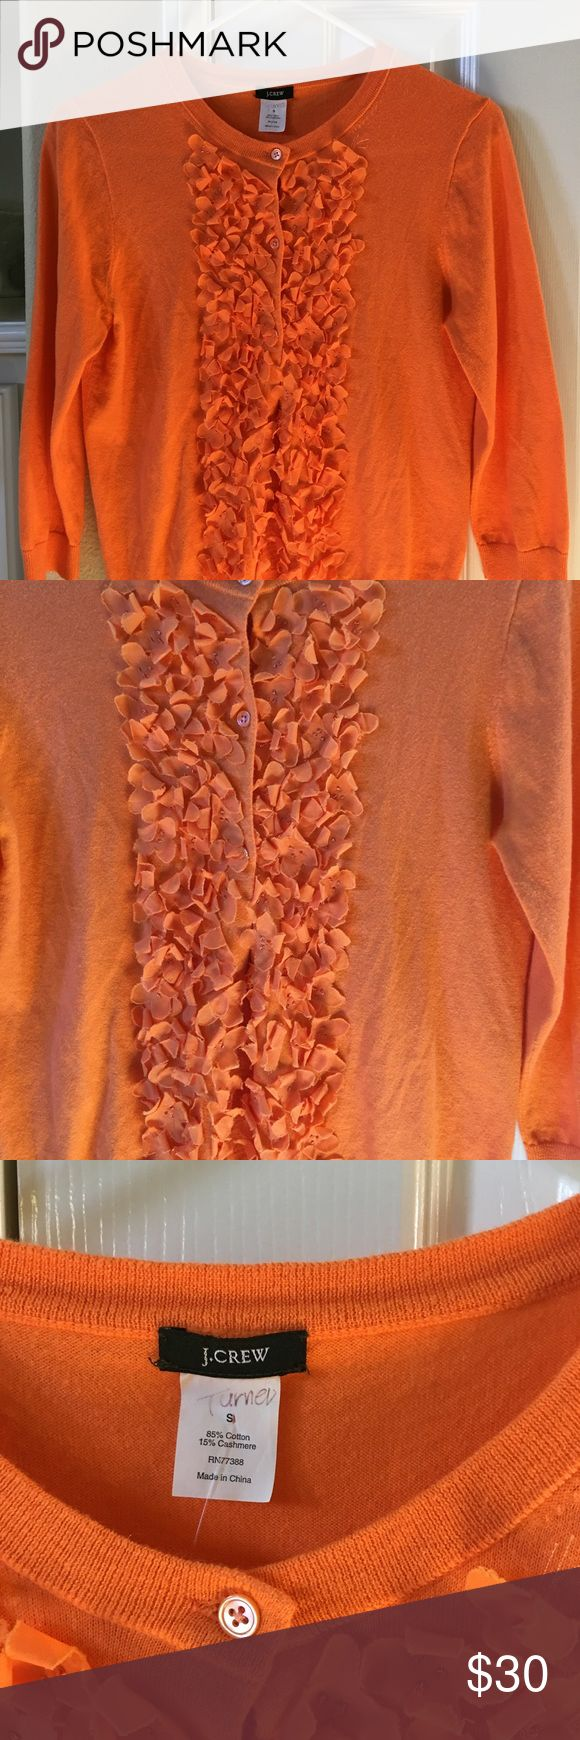 J.Crew orange pumpkin petals cardi size Small I really adore this petite cardigan but unfortunately it's too small for me. Good for this fall season J. Crew Sweaters Cardigans